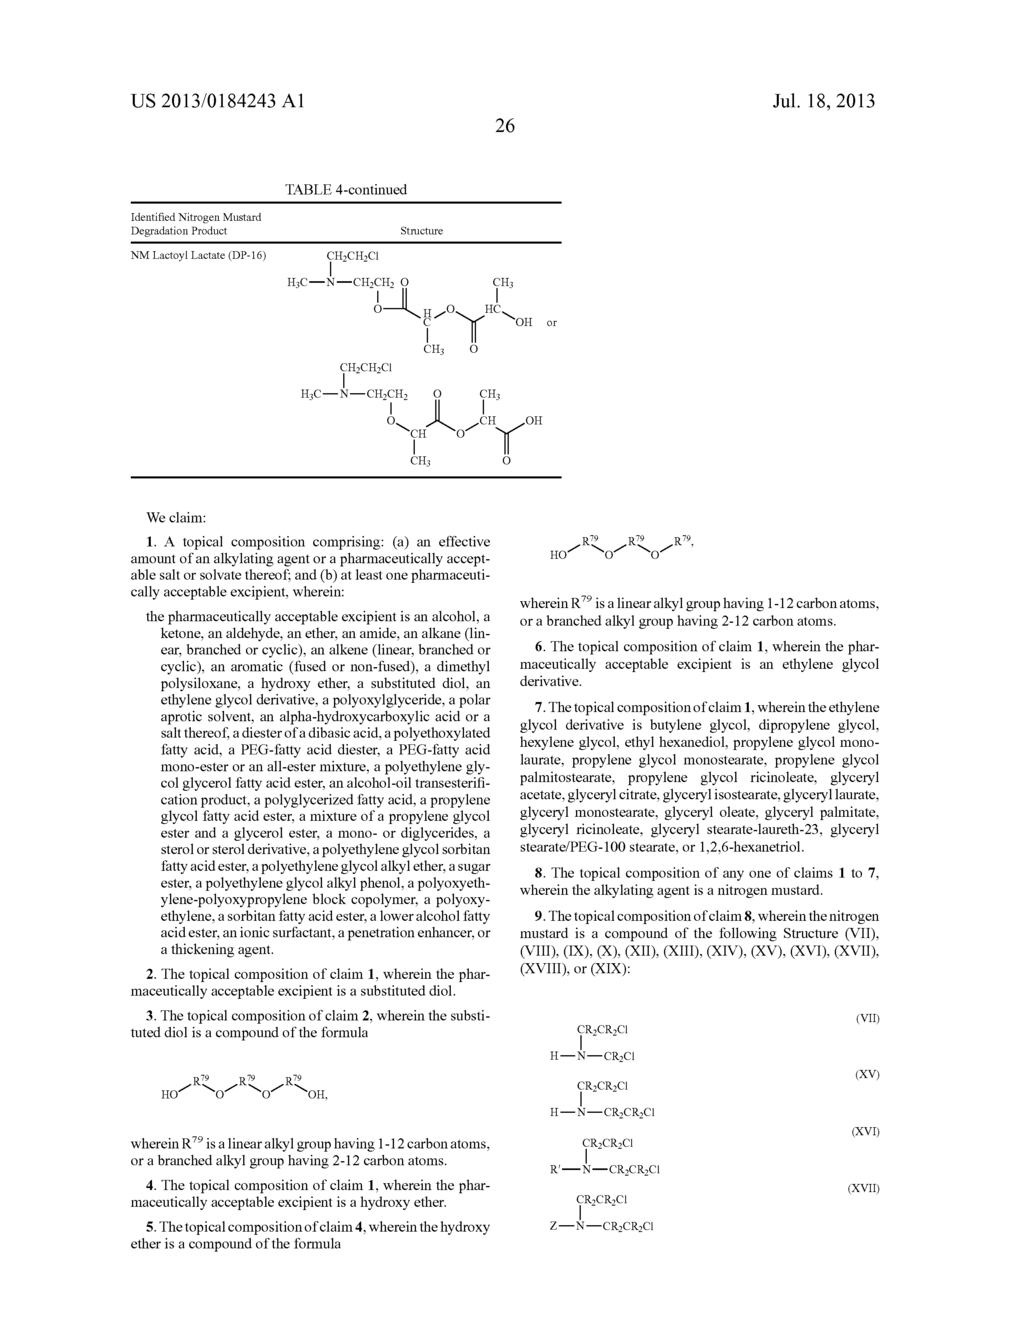 COMPOSITIONS OF ALKYLATING AGENTS AND METHODS OF TREATING SKIN DISORDERS     THEREWITH - diagram, schematic, and image 27